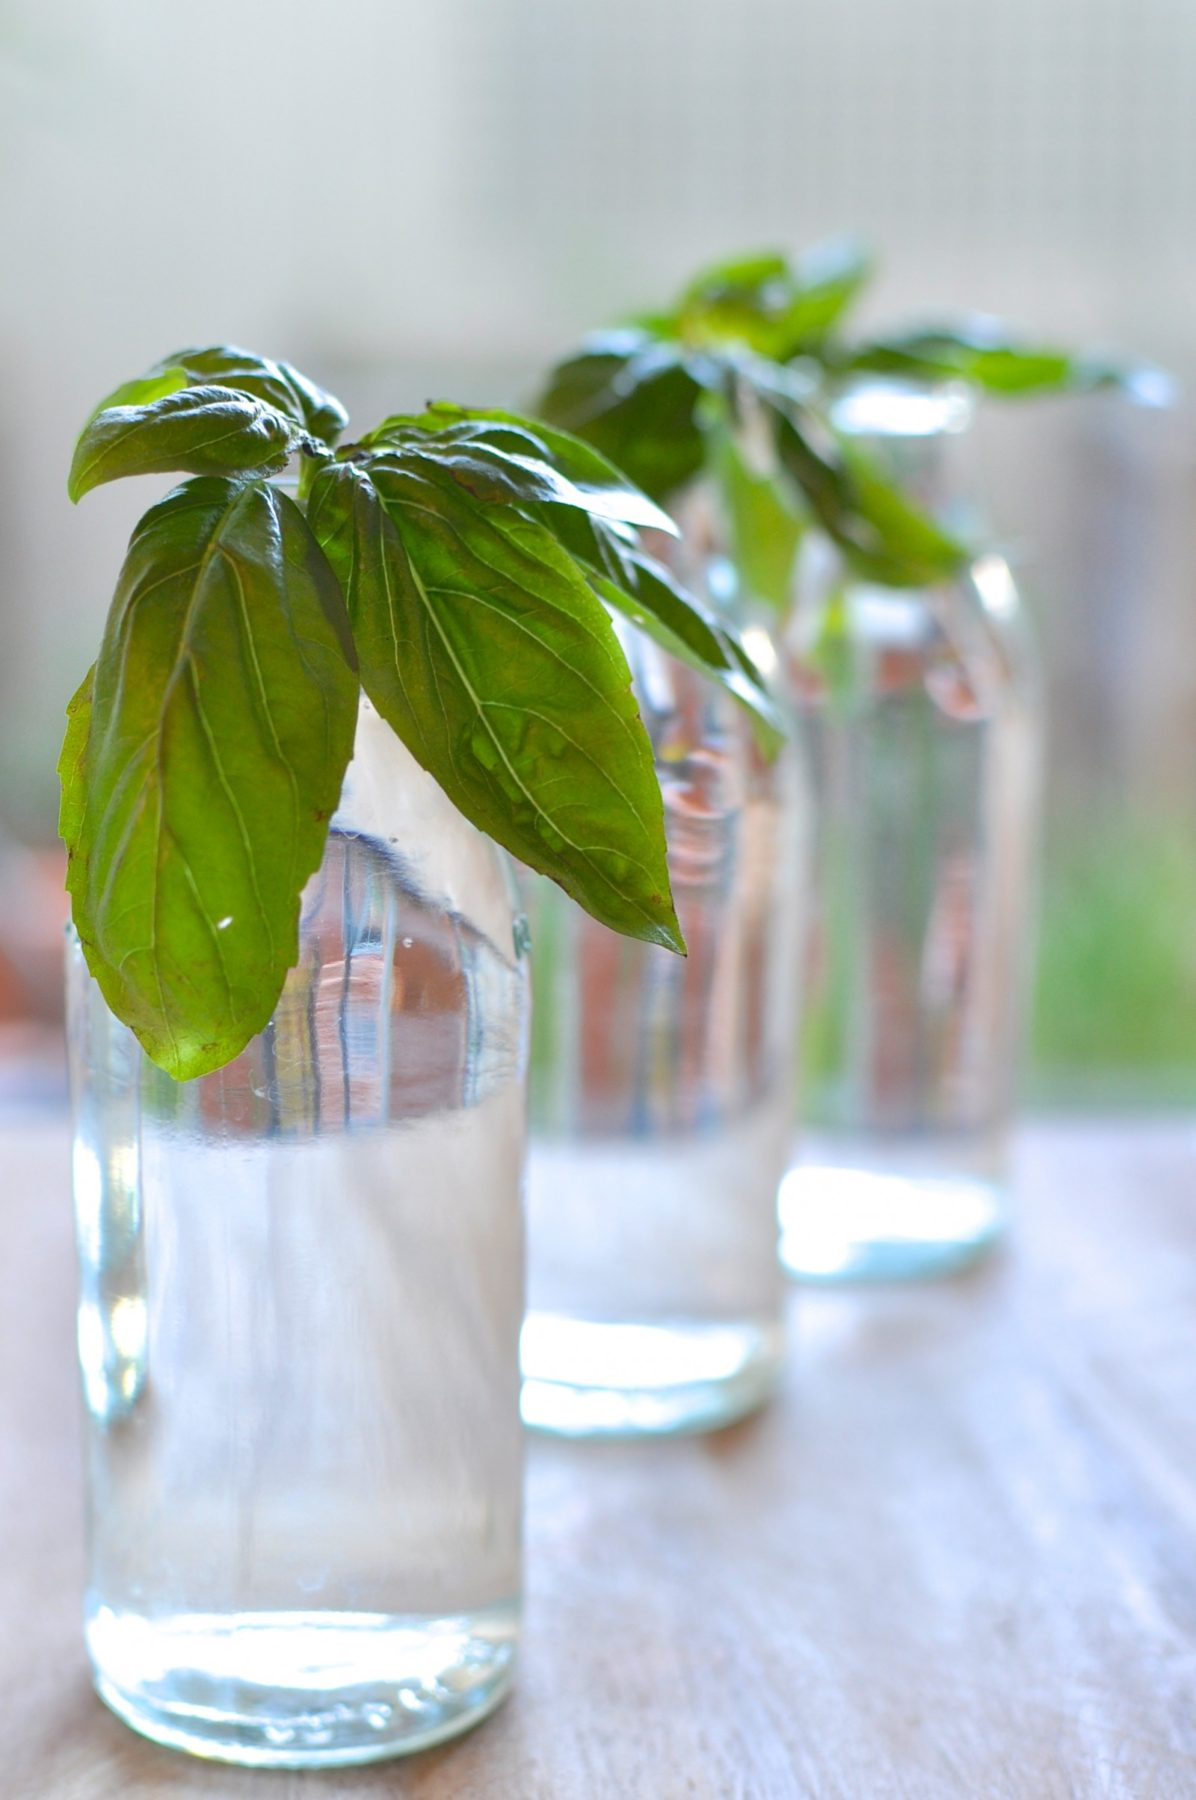 how to grow basil seedlings from cuttings claire k creations. Black Bedroom Furniture Sets. Home Design Ideas